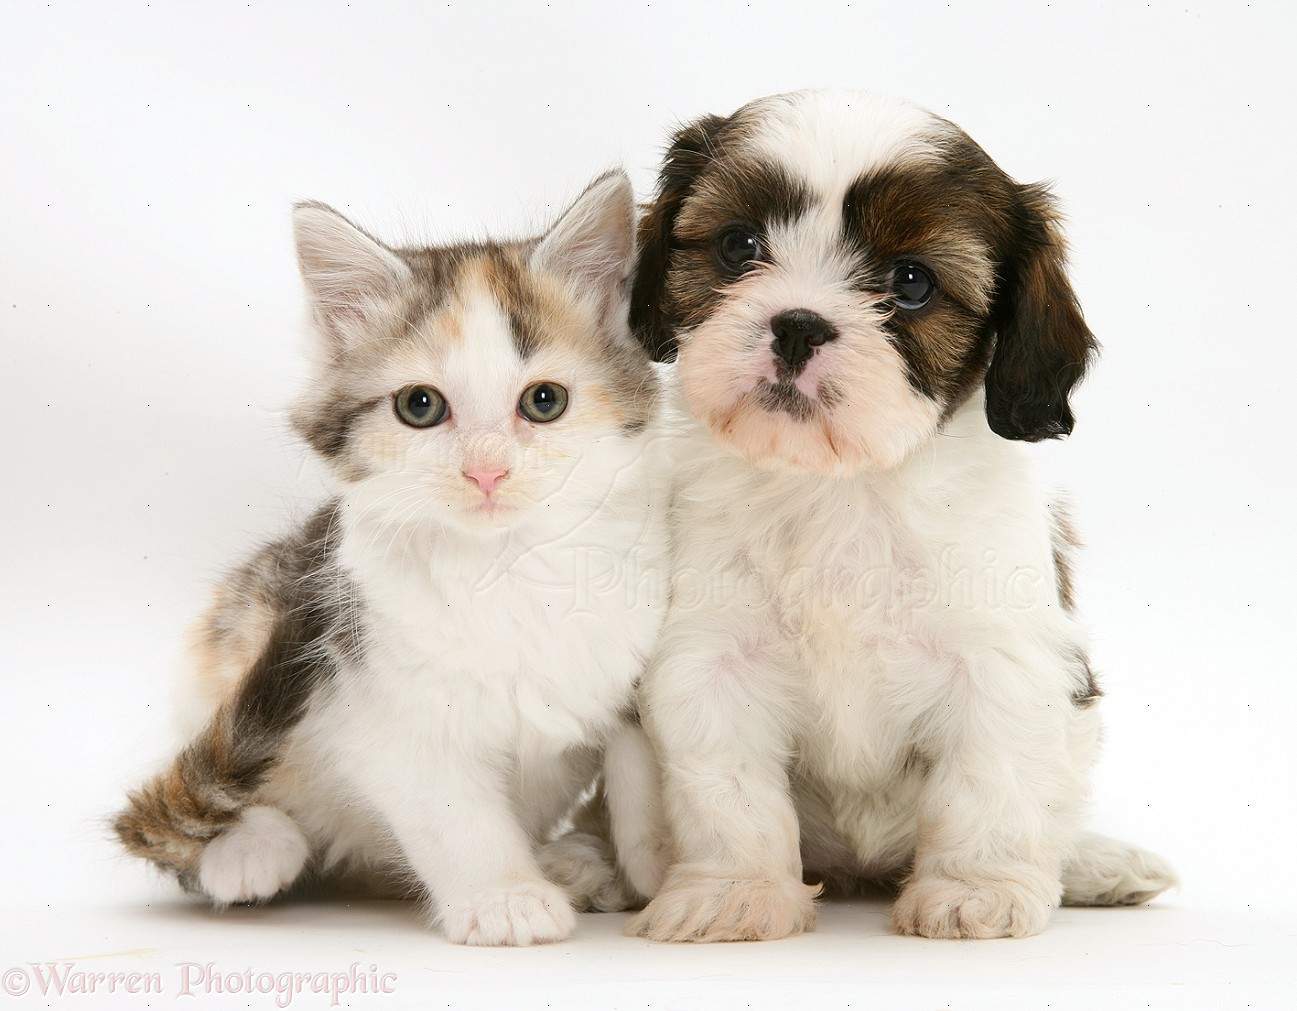 ... Shih-Tzu) pup with silver tortoiseshell-and-white Maine Coon kitten